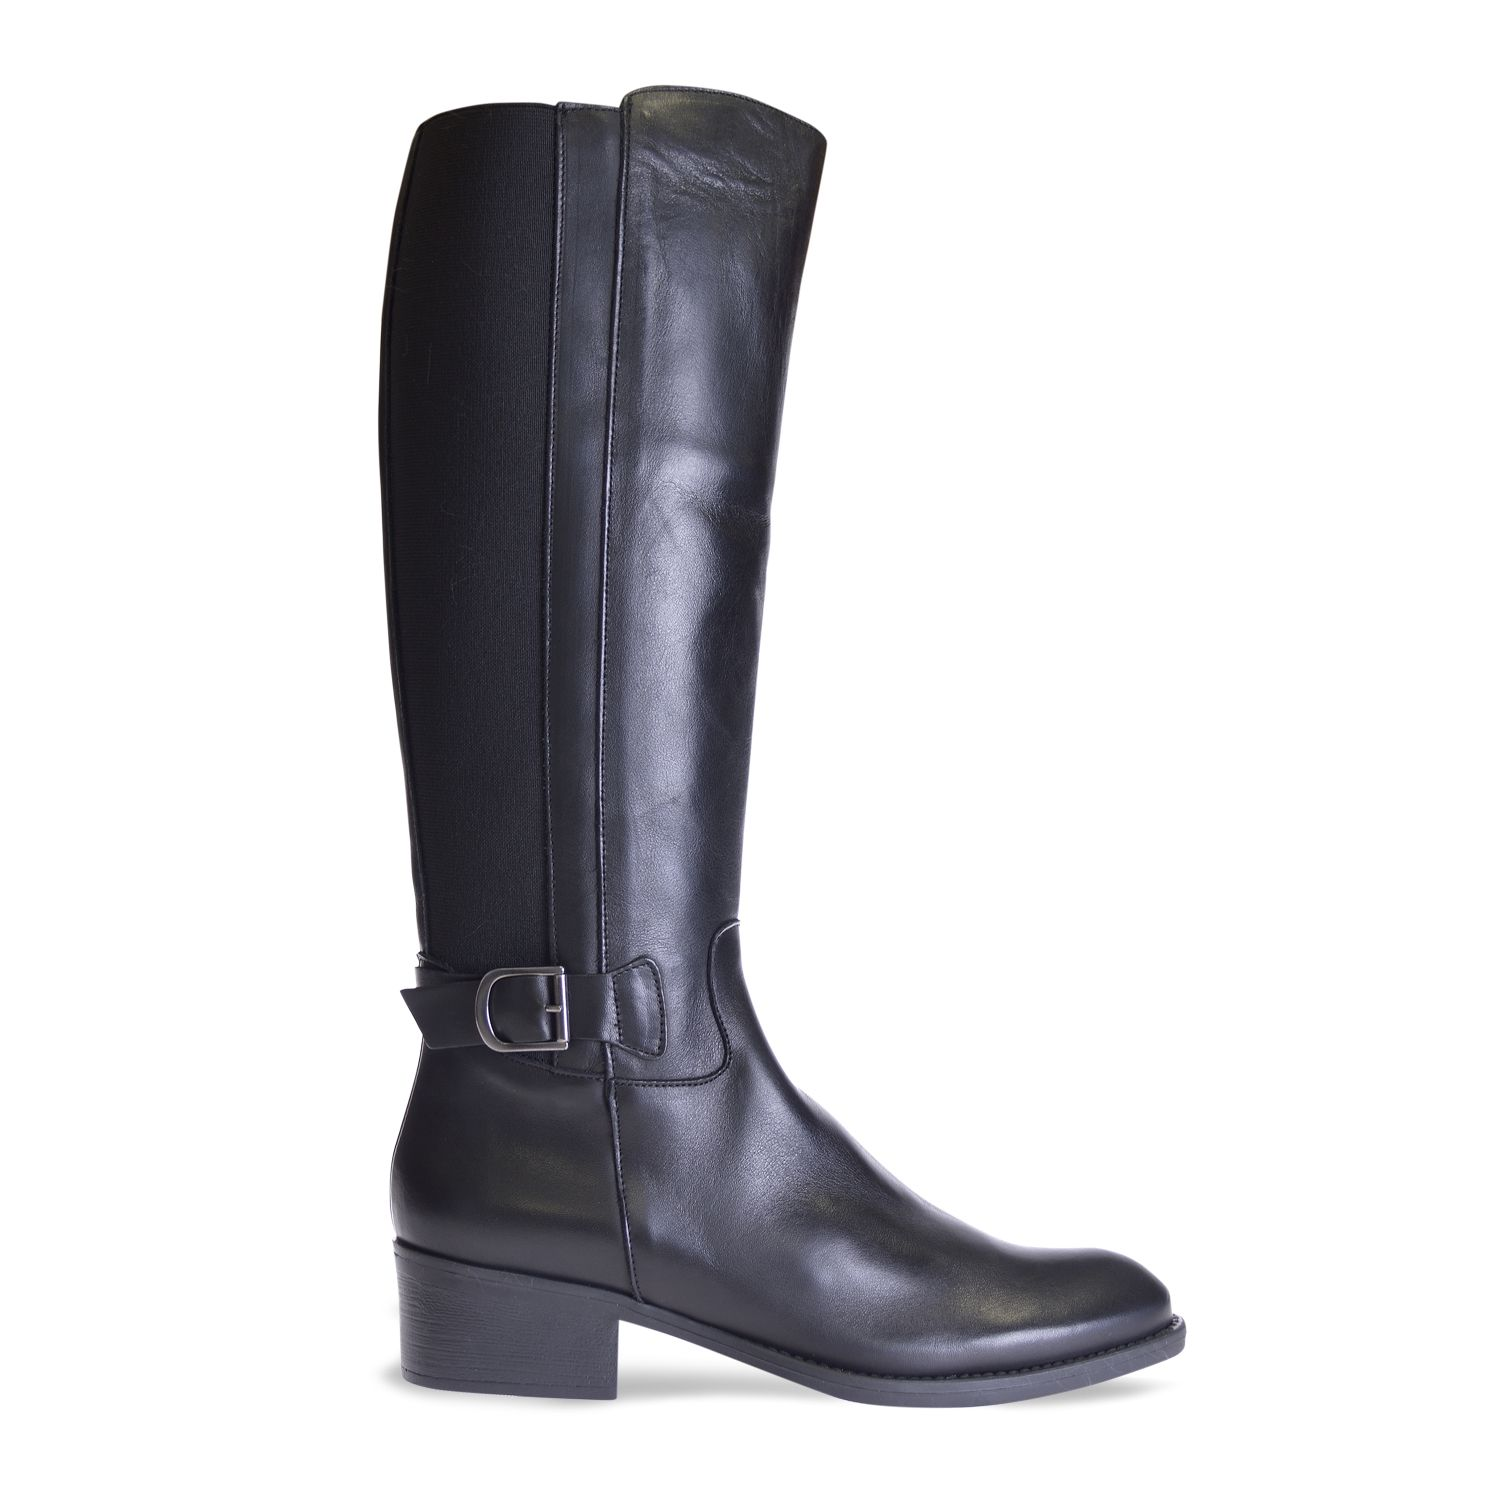 Leather boot for women - TACOMA-P